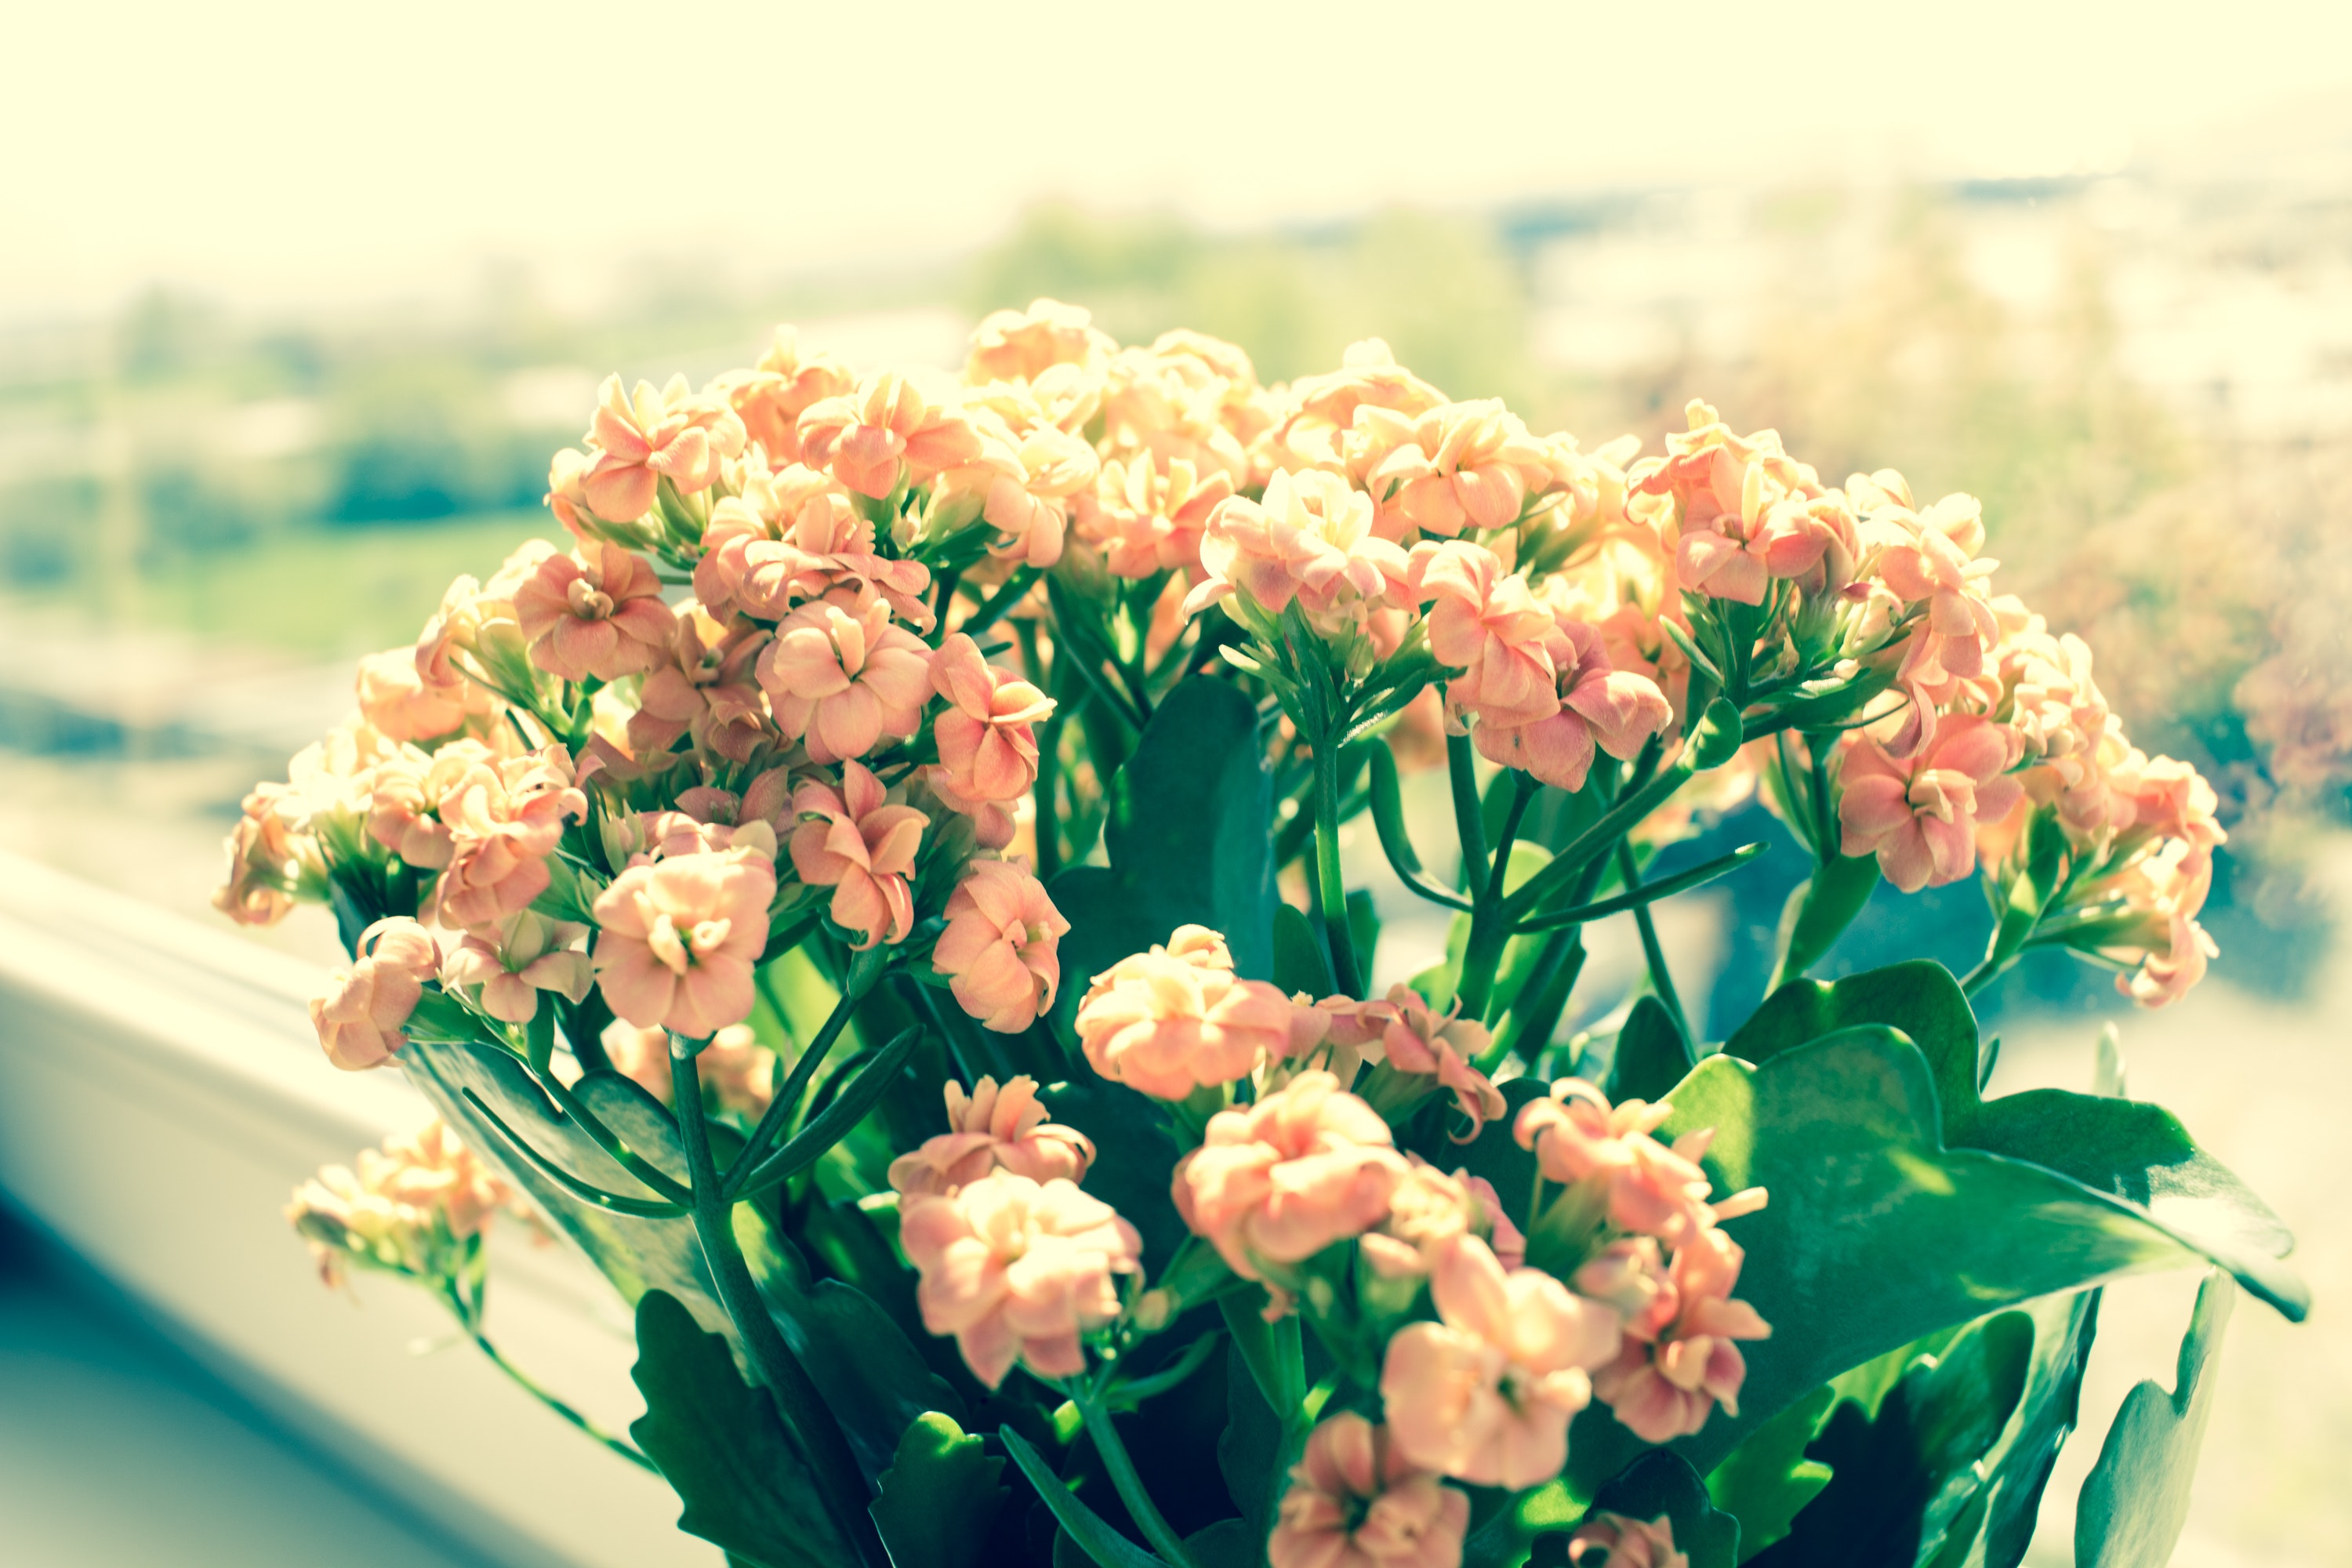 Pink flowers on green plants phptography photo